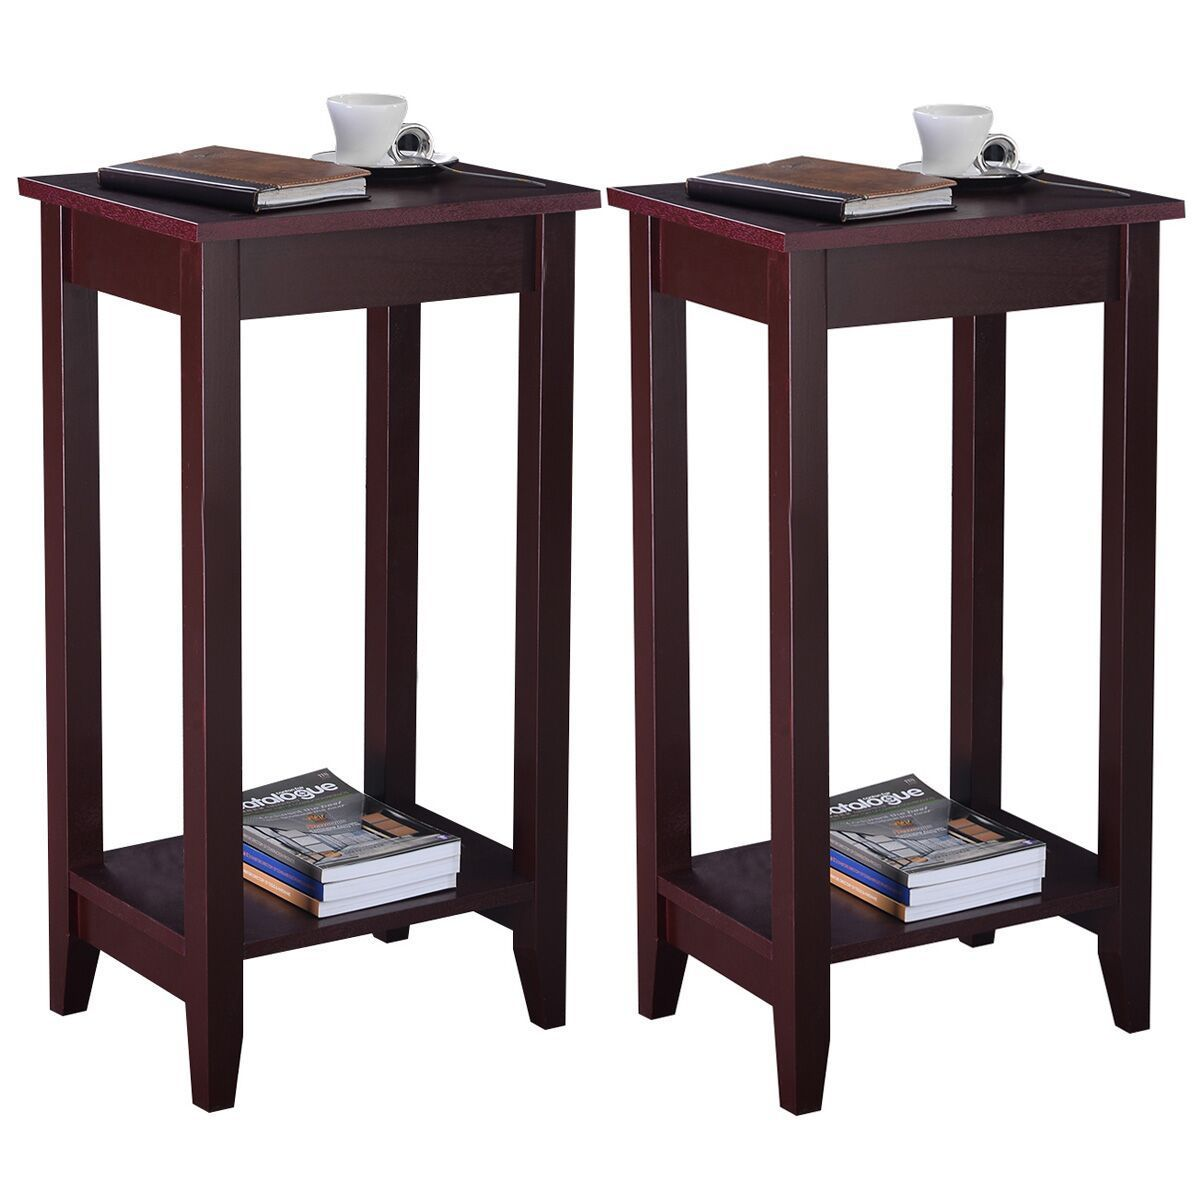 Giantex Set of 2 Tall End Table Coffee Stand Night Side Accent Furniture Modern Home Wooden Storage Coffee Tables 2*HW51529 st george judith stand tall abe lincoln